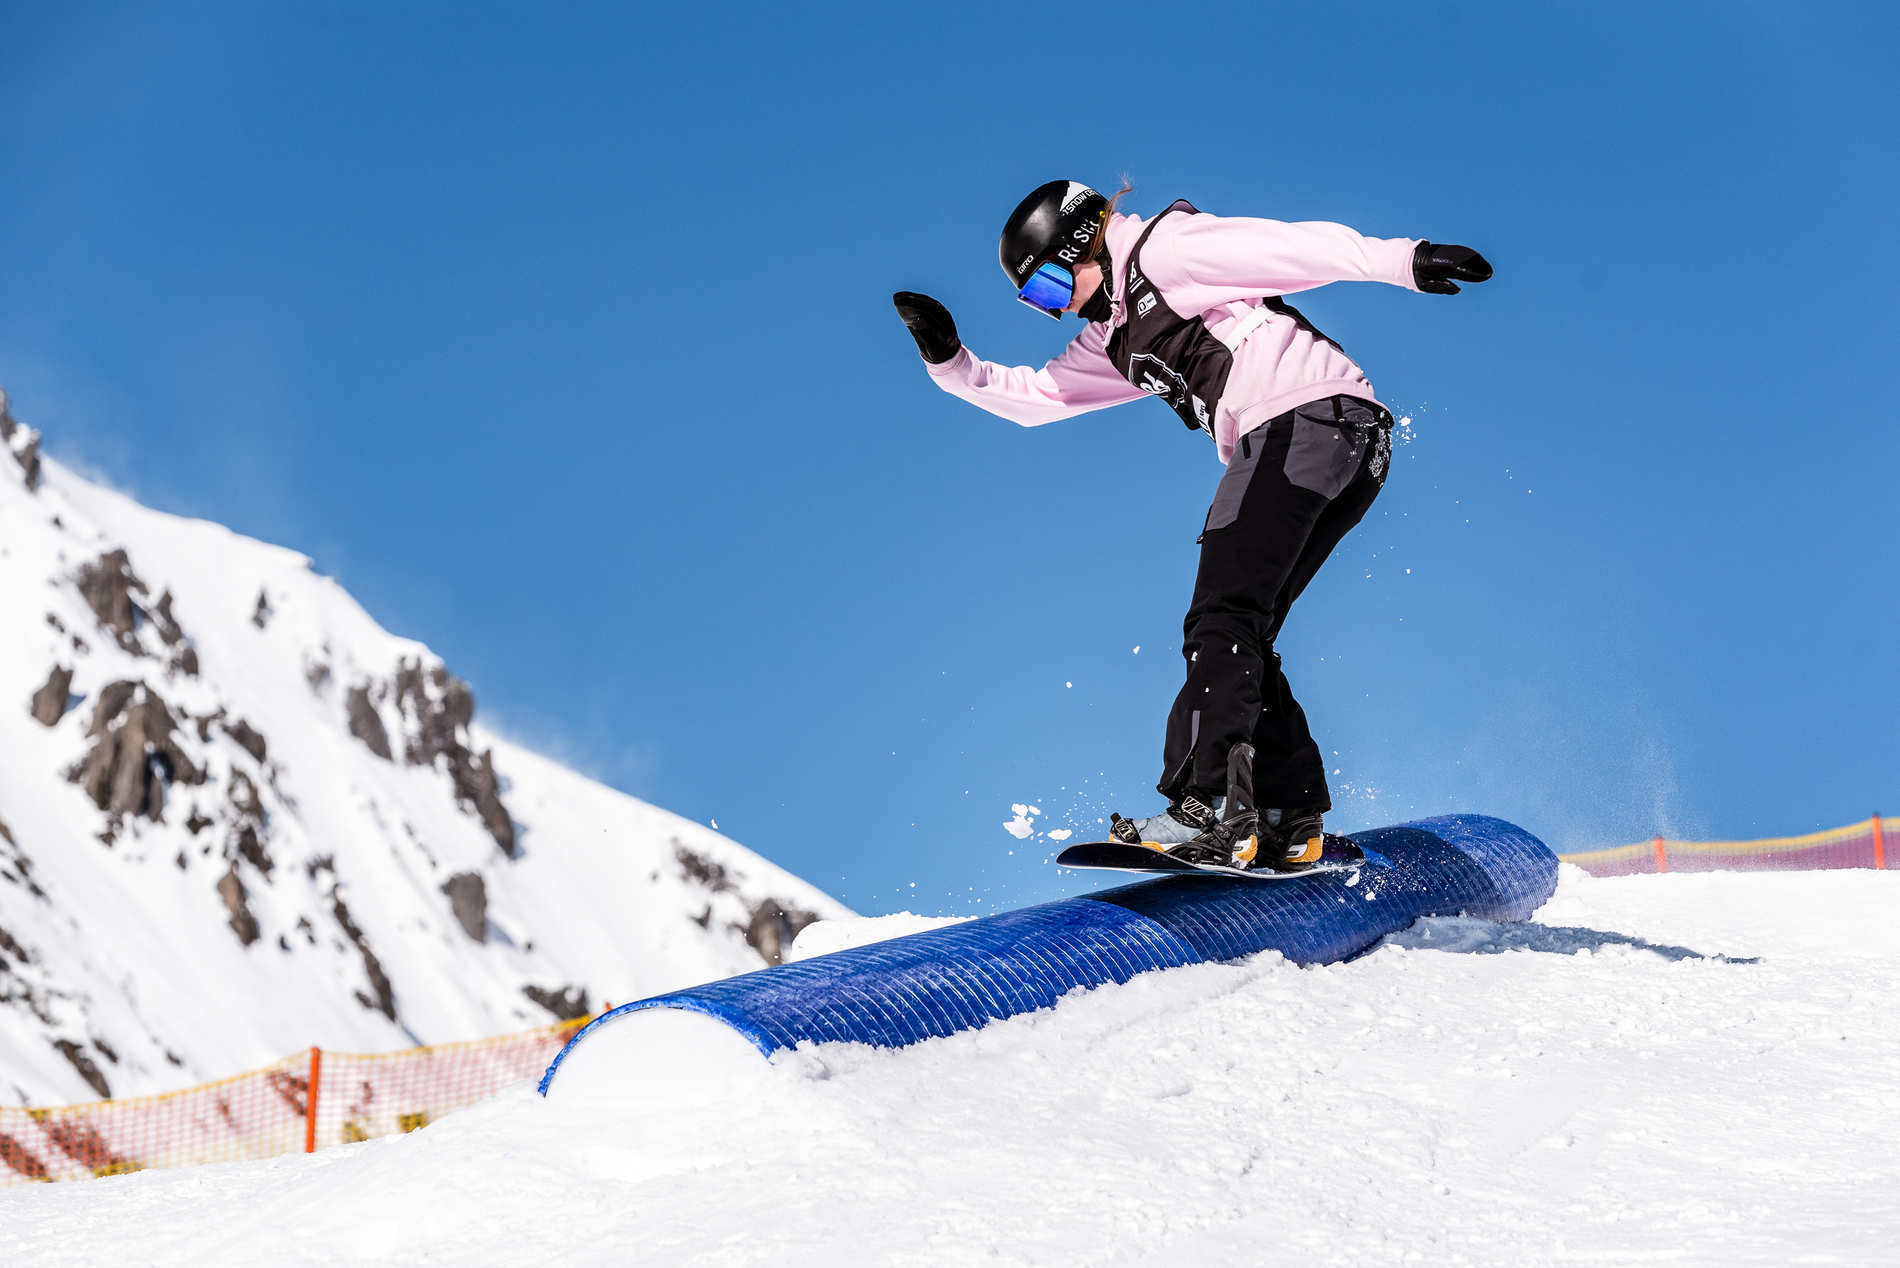 web mayrhofen 23 02 2019 action sb cerys allen christian riefenberg qparks 1